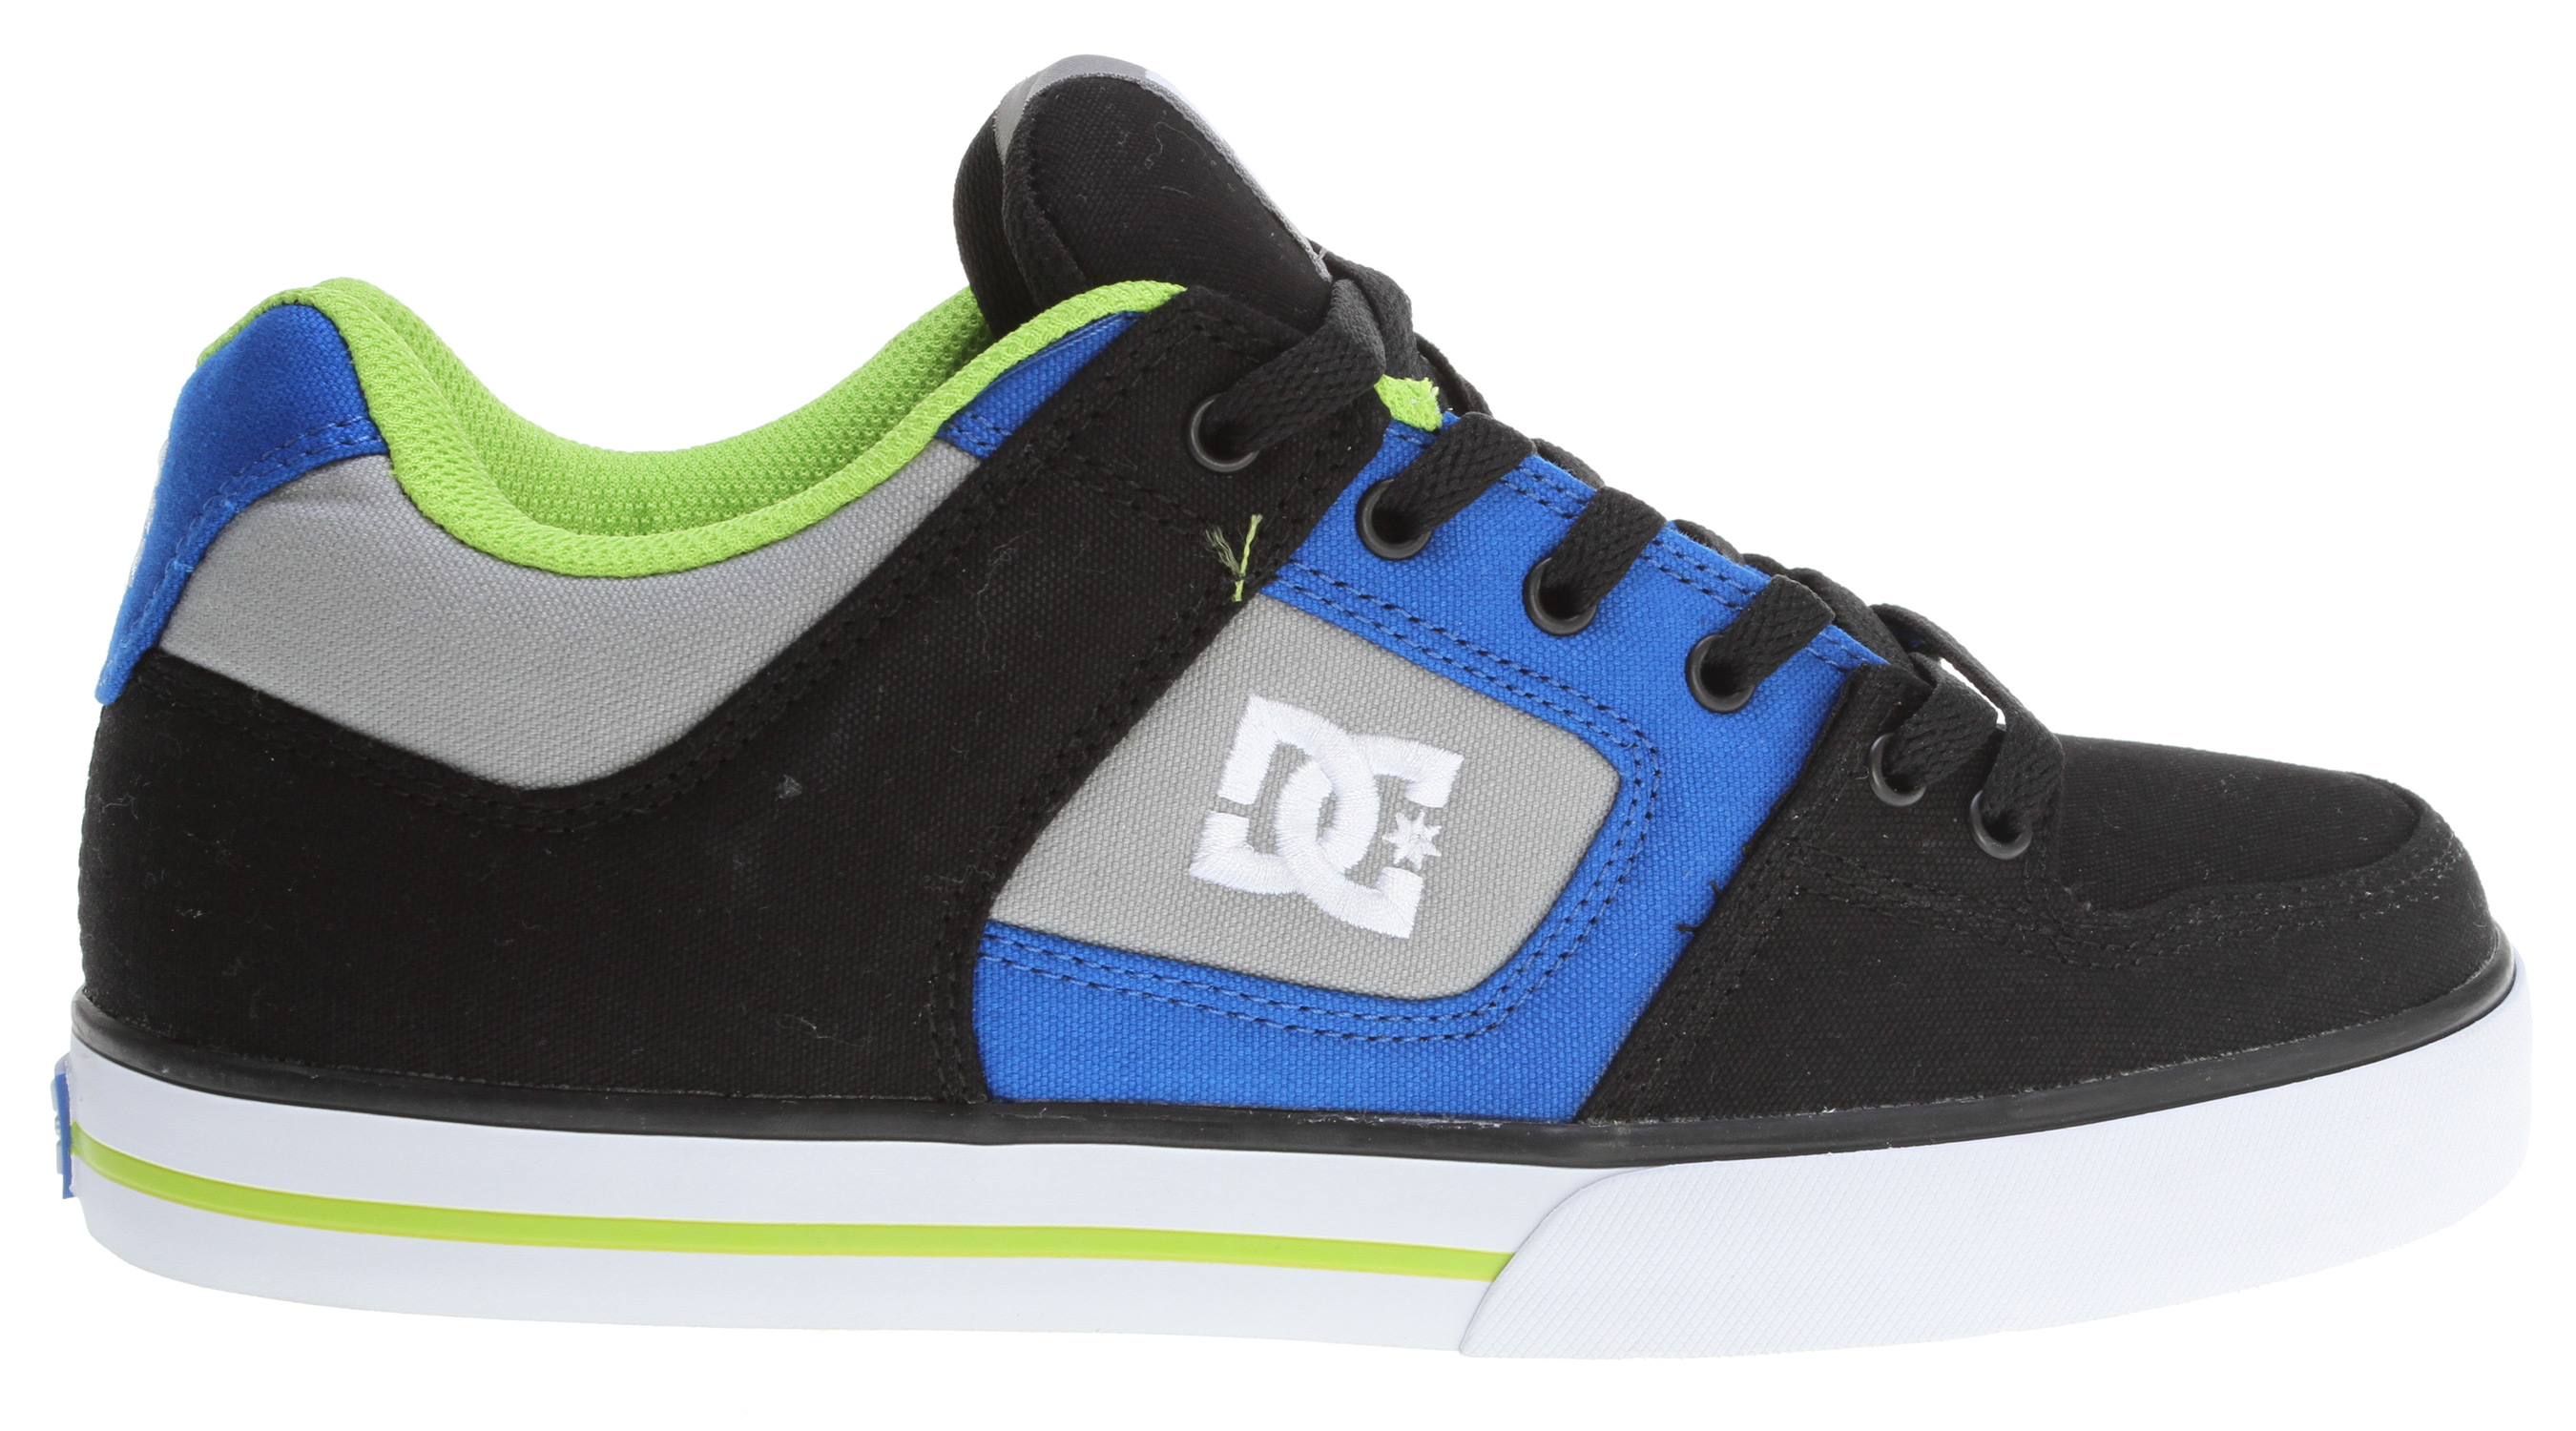 "Skateboard Key Features of the DC Pure TX Skate Shoes: All Canvas Upper Foam Padded Tongue And Collar For Added Comfort And Support Vent Holes In Upper For Breathability Metal Eyelets Performance Wrap Cup Sole, Our Exclusive Construction Technique DGT - Dynamic Grip Technology Abrasion-Resistant Sticky Rubber Outsole With DC's Trademarked ""Pill Pattern"" Bottom. - $41.95"